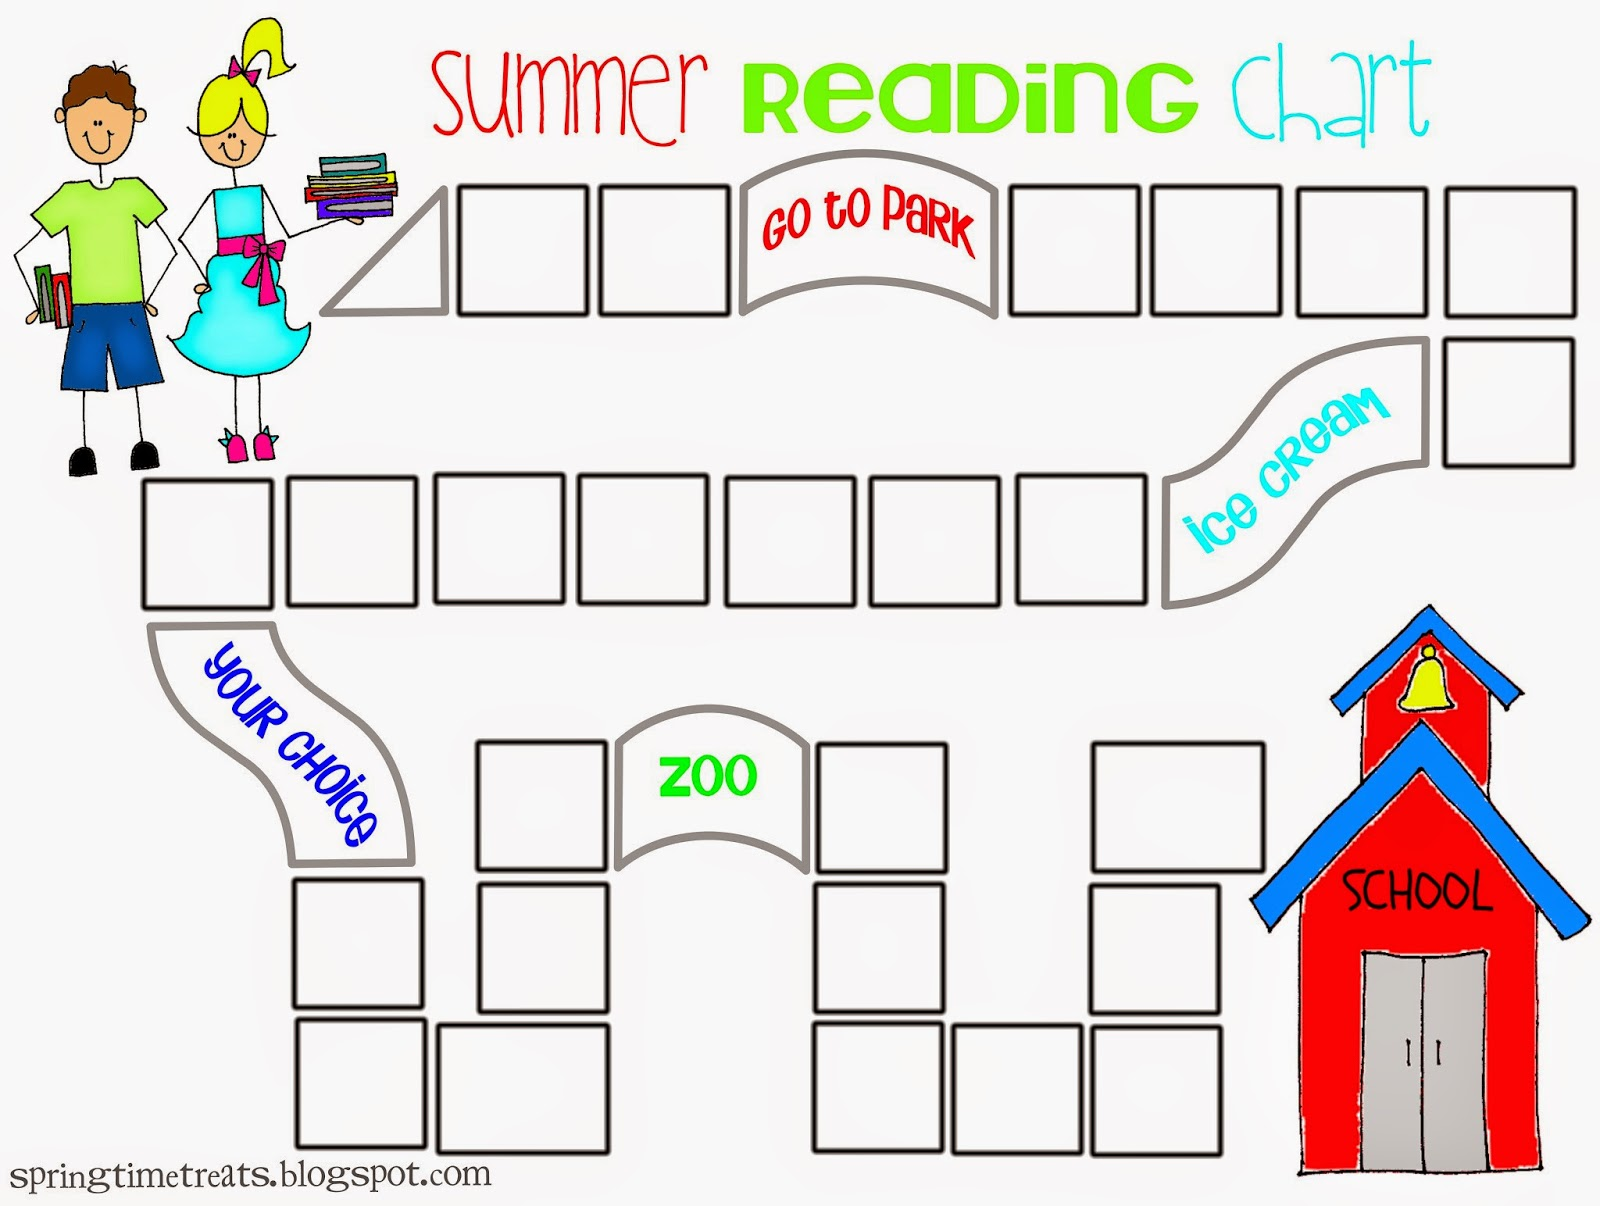 image about Printable Reading Charts named Free of charge printable studying charts for young children - No cost printable